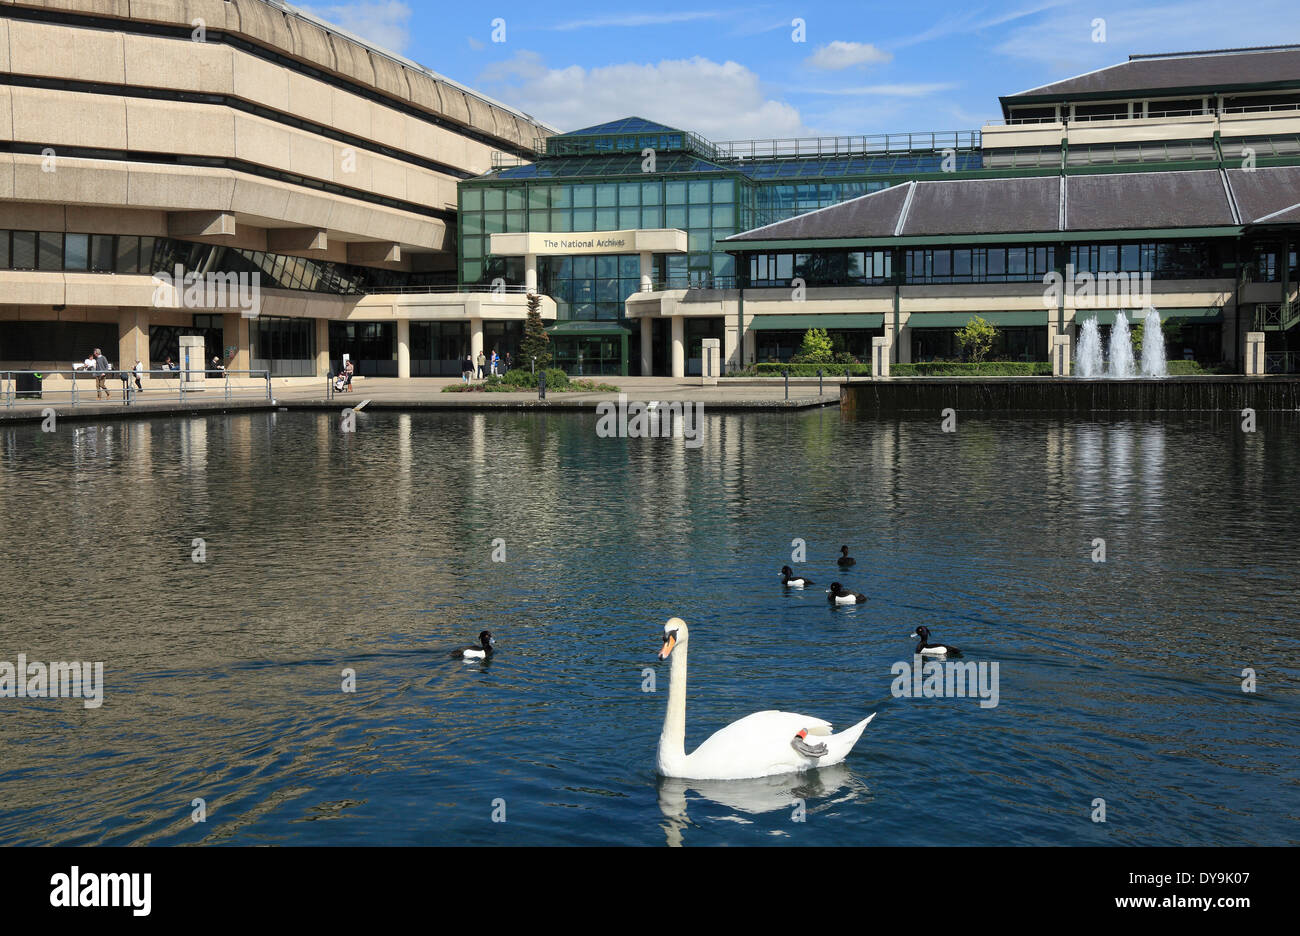 The National Archives Building at Kew in London UK - Stock Image